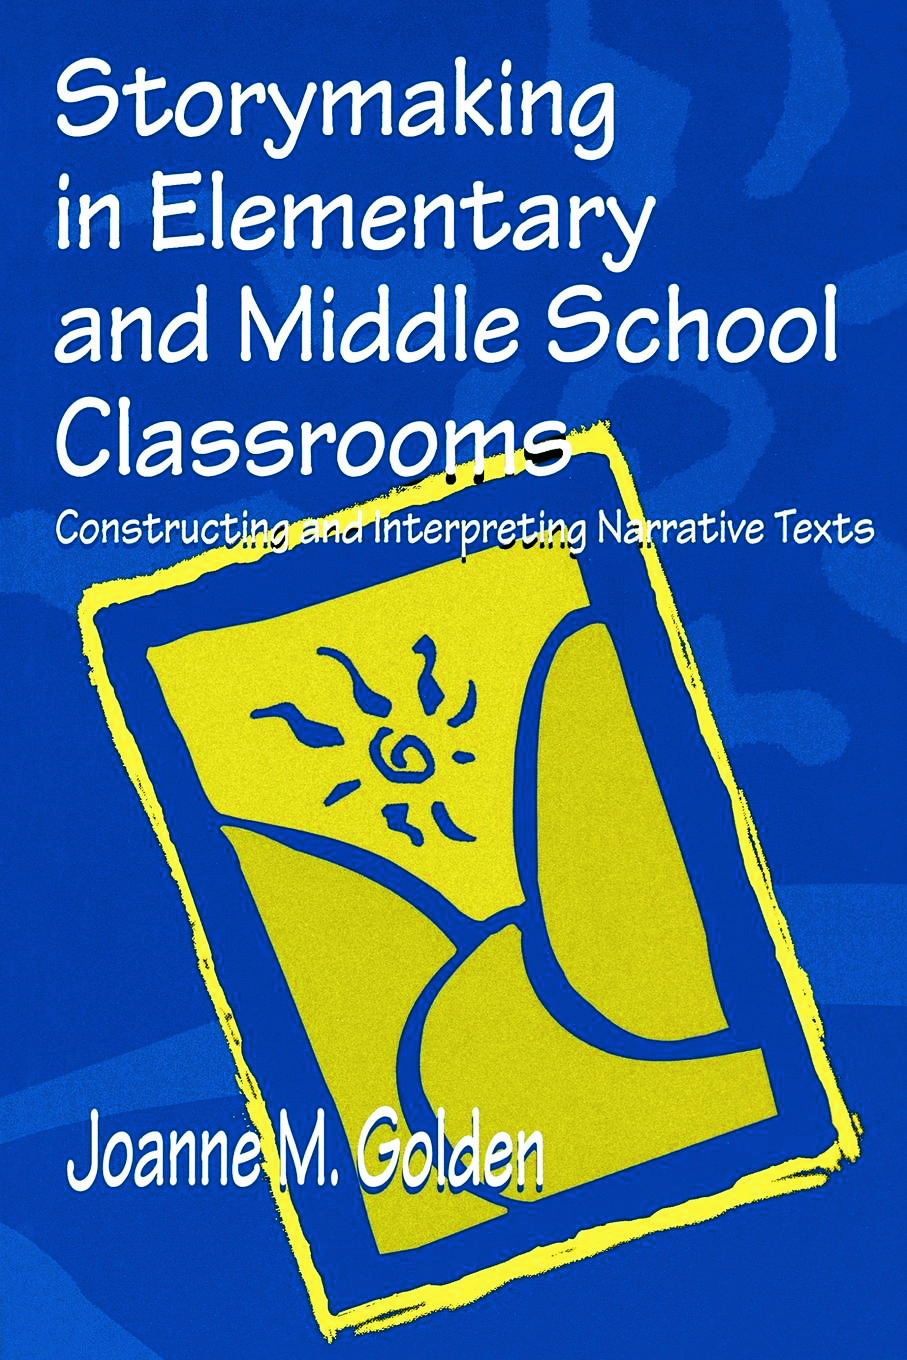 Storymaking in Elementary and Middle School Classrooms